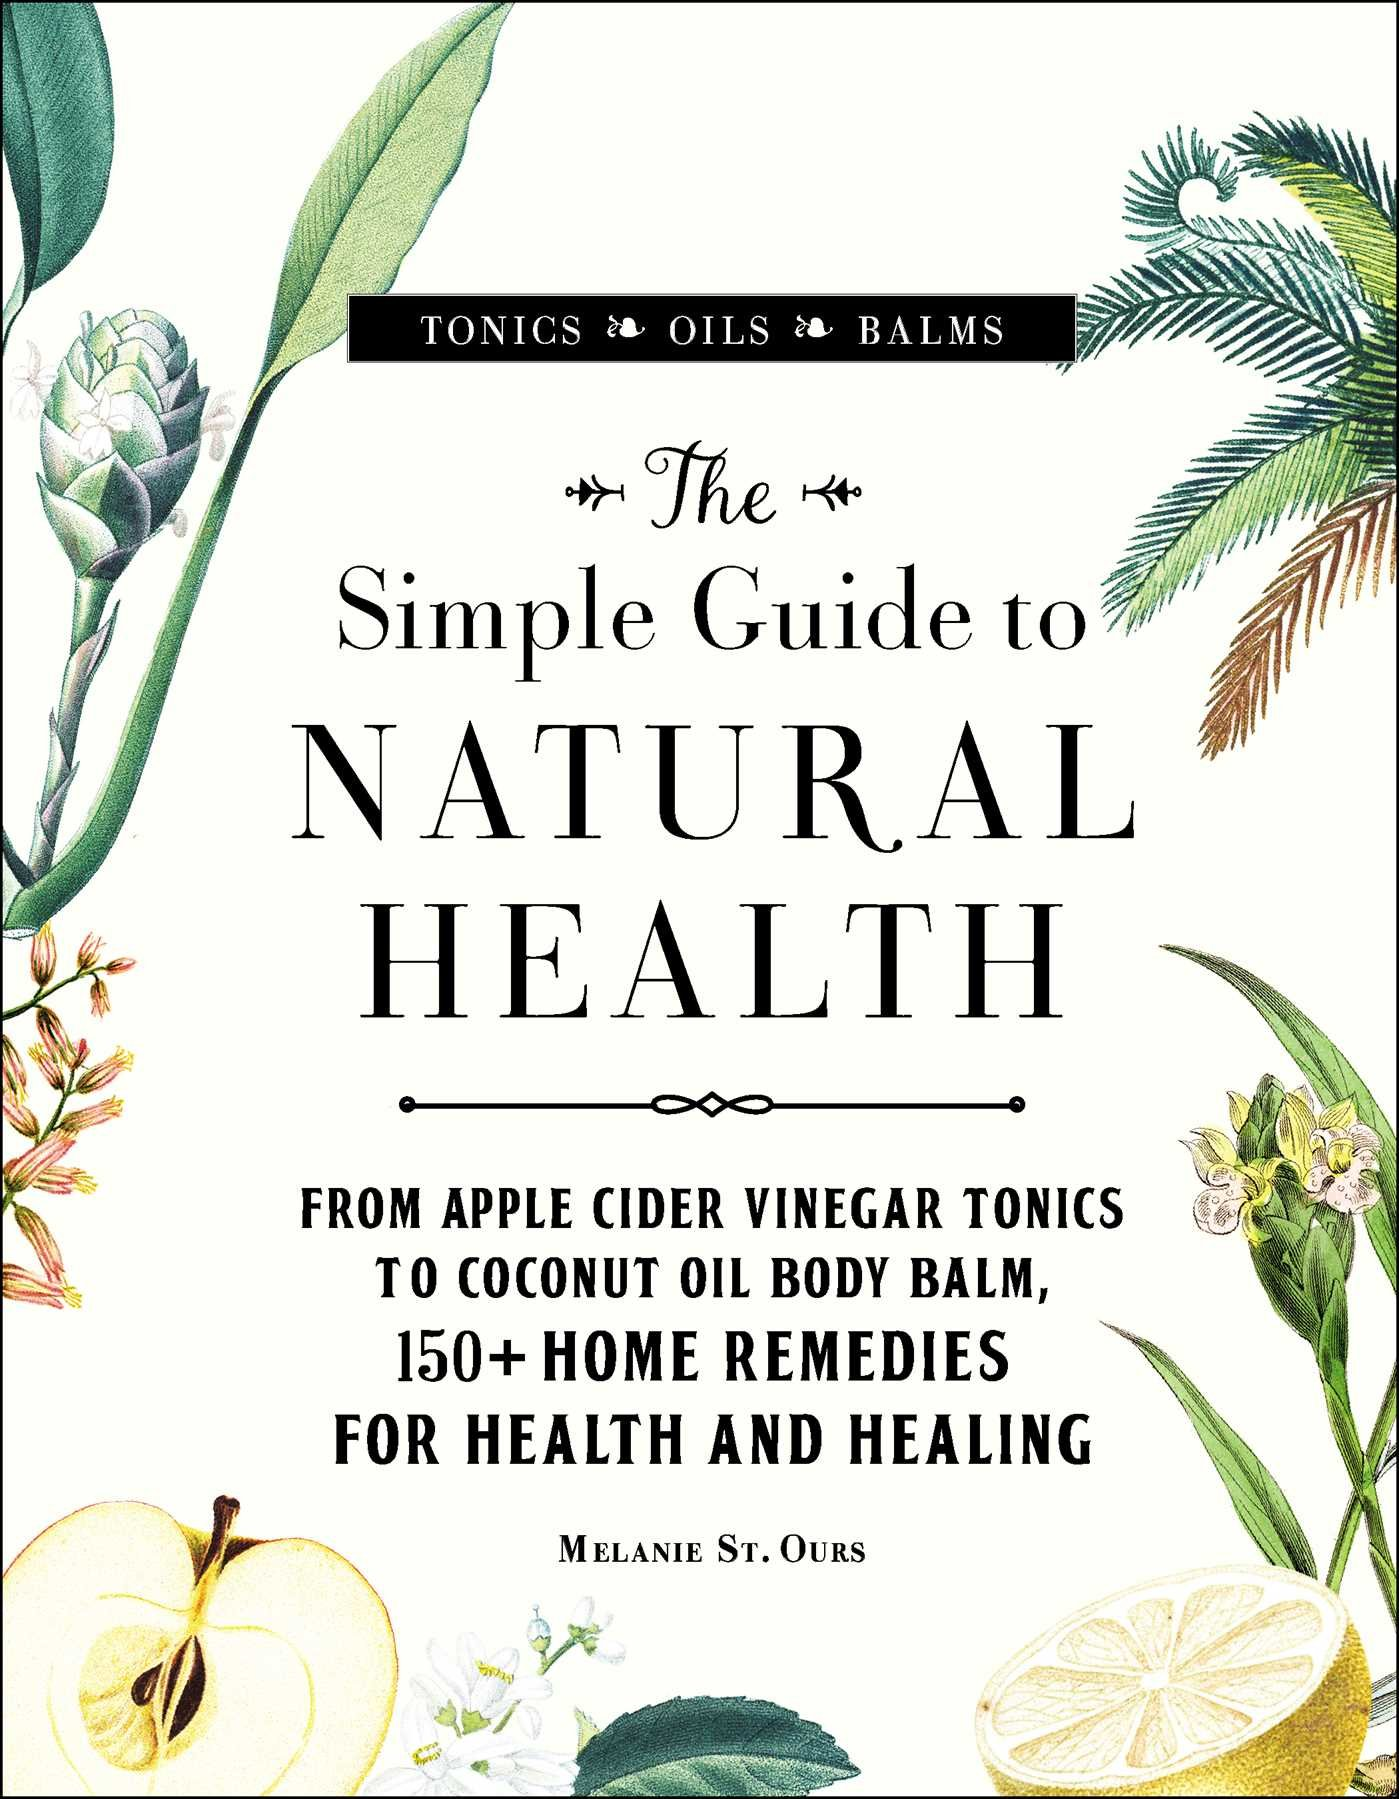 The Simple Guide to Natural Health: From Apple Cider Vinegar Tonics to Coconut Oil Body Balm, 150+ Home Remedies for…